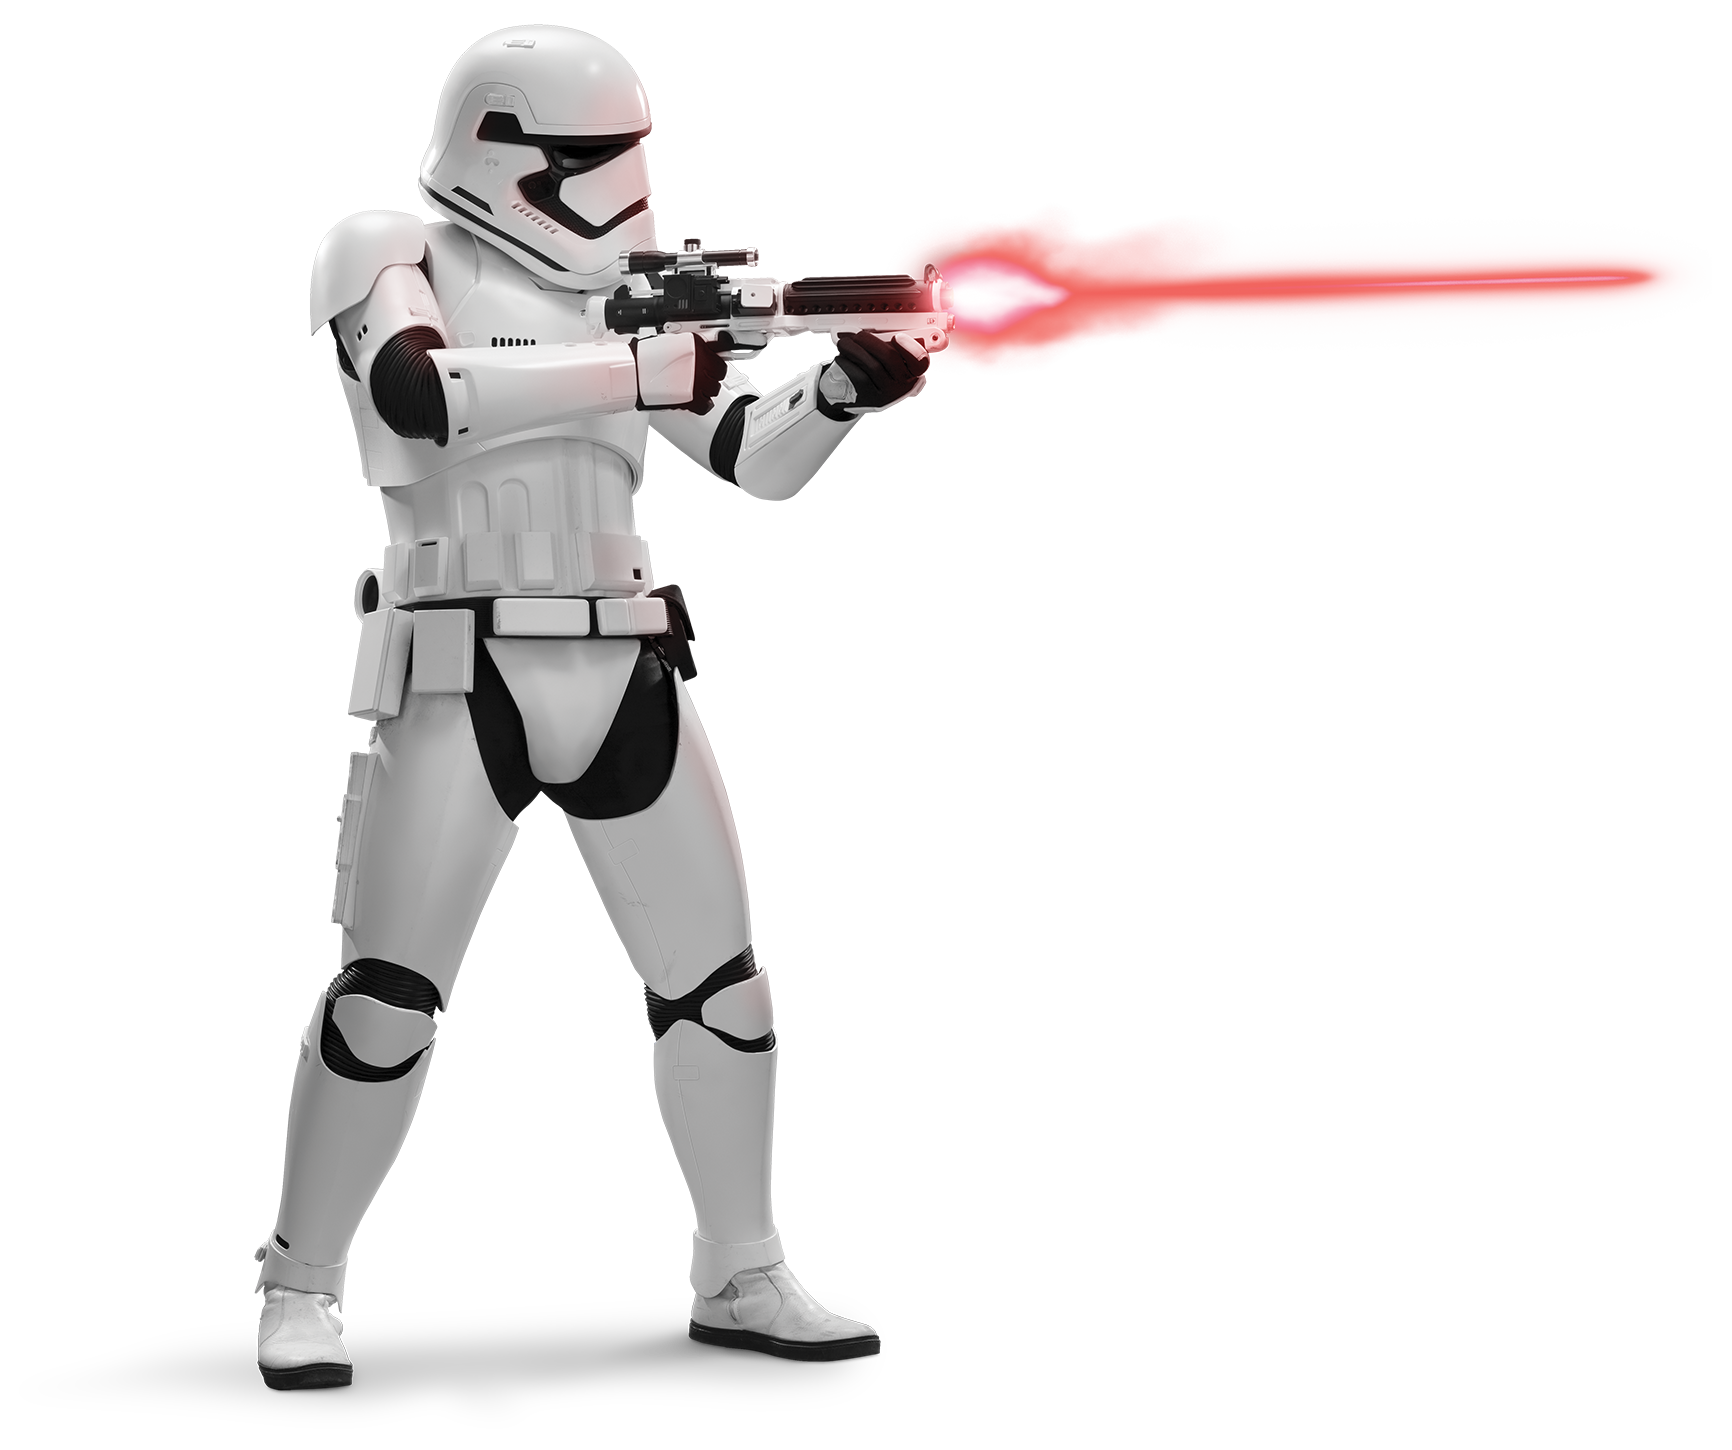 Stormtrooper PNG images free download.